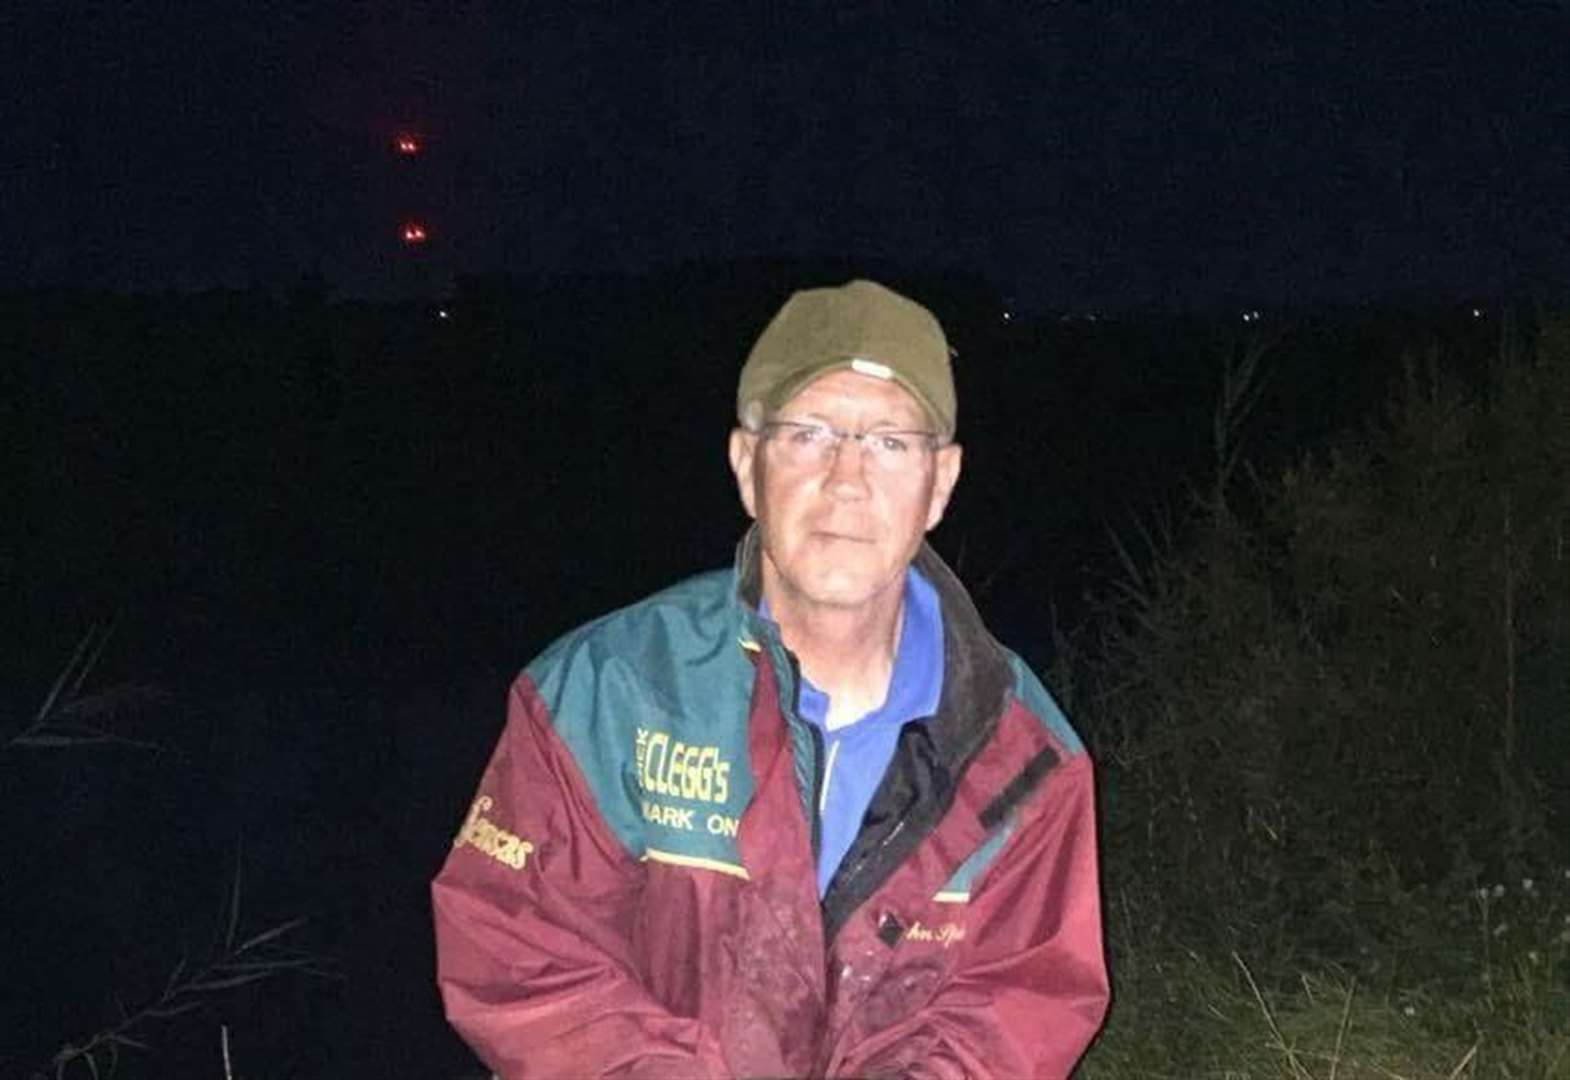 Tydd Gote Angling Club torrents can't deter Andrew Kilby who exploits rainy conditions with win